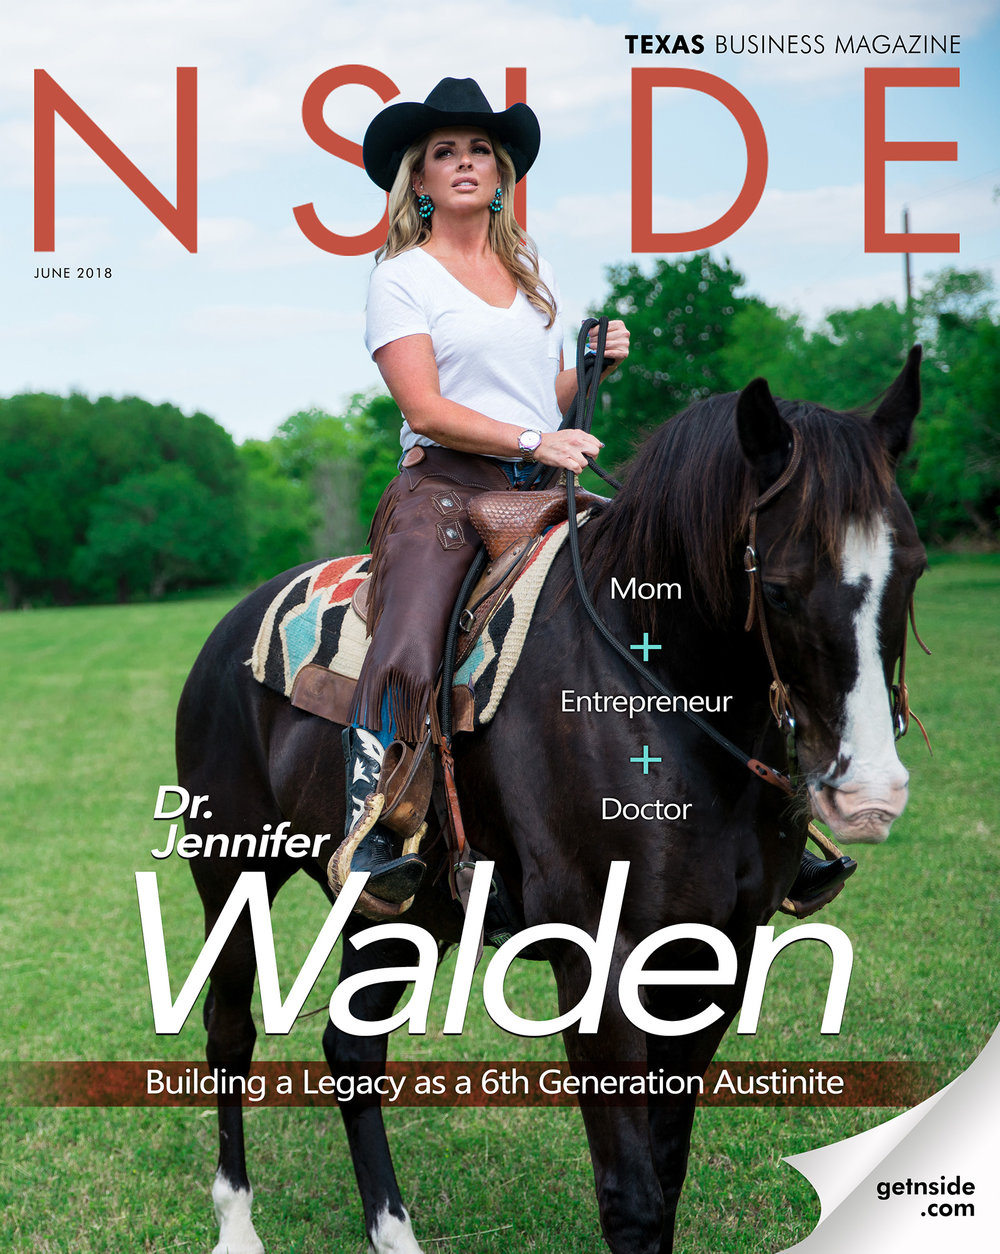 """Doctor Profile - NSIDE - """"First and foremost, I'm a mother, an entrepreneur, a businesswoman and I'm a plastic surgeon"""", Dr. Jennifer Walden says when asked to describe herself."""